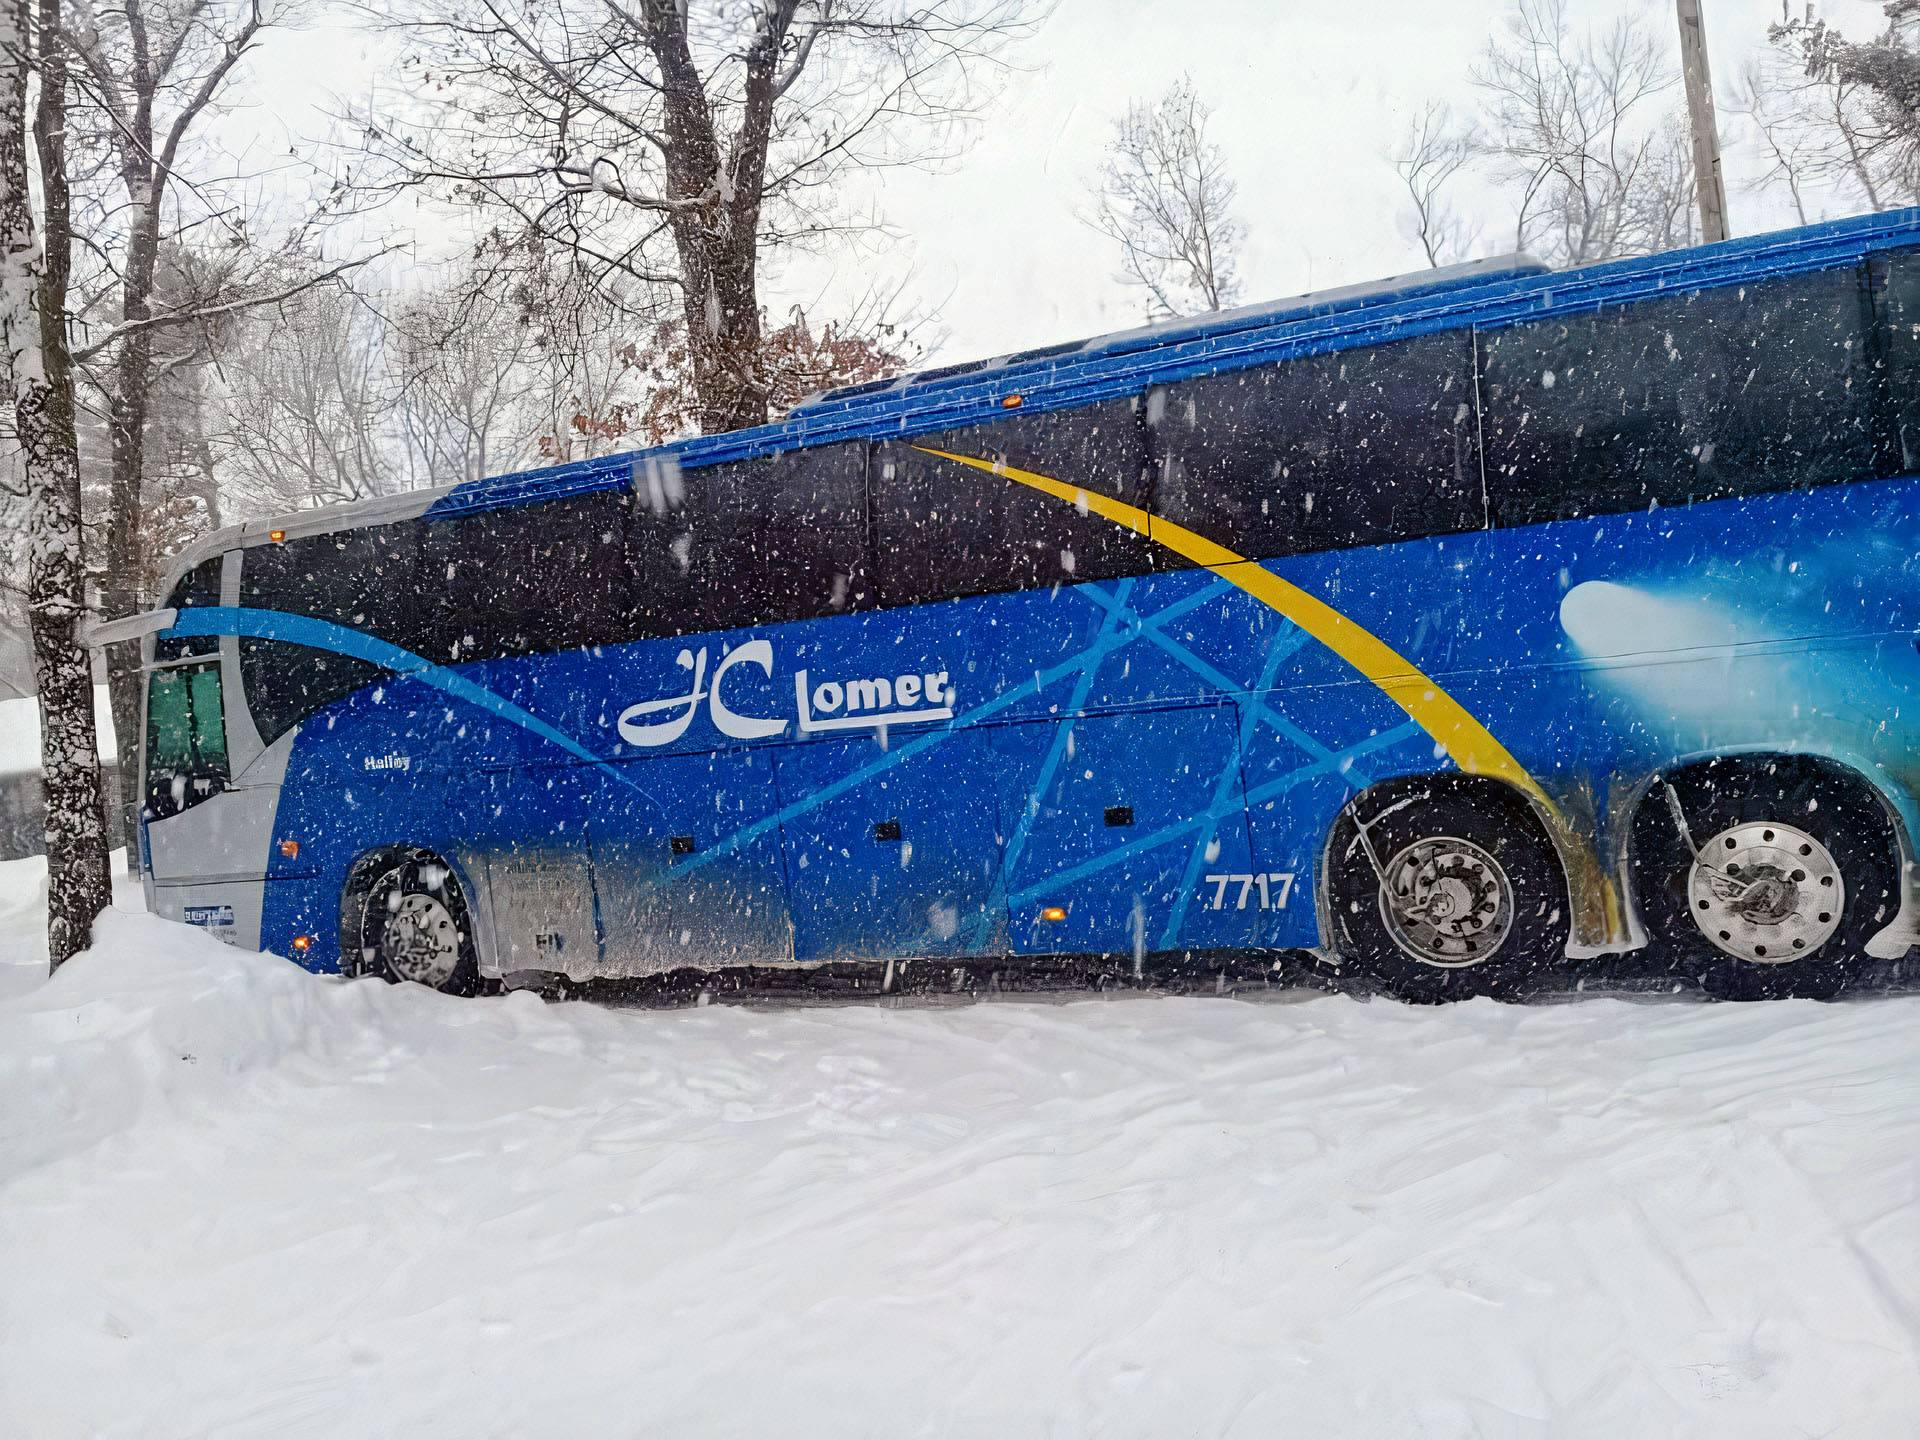 The Volvo 9700 monoblock is stuck in the snow in the United States